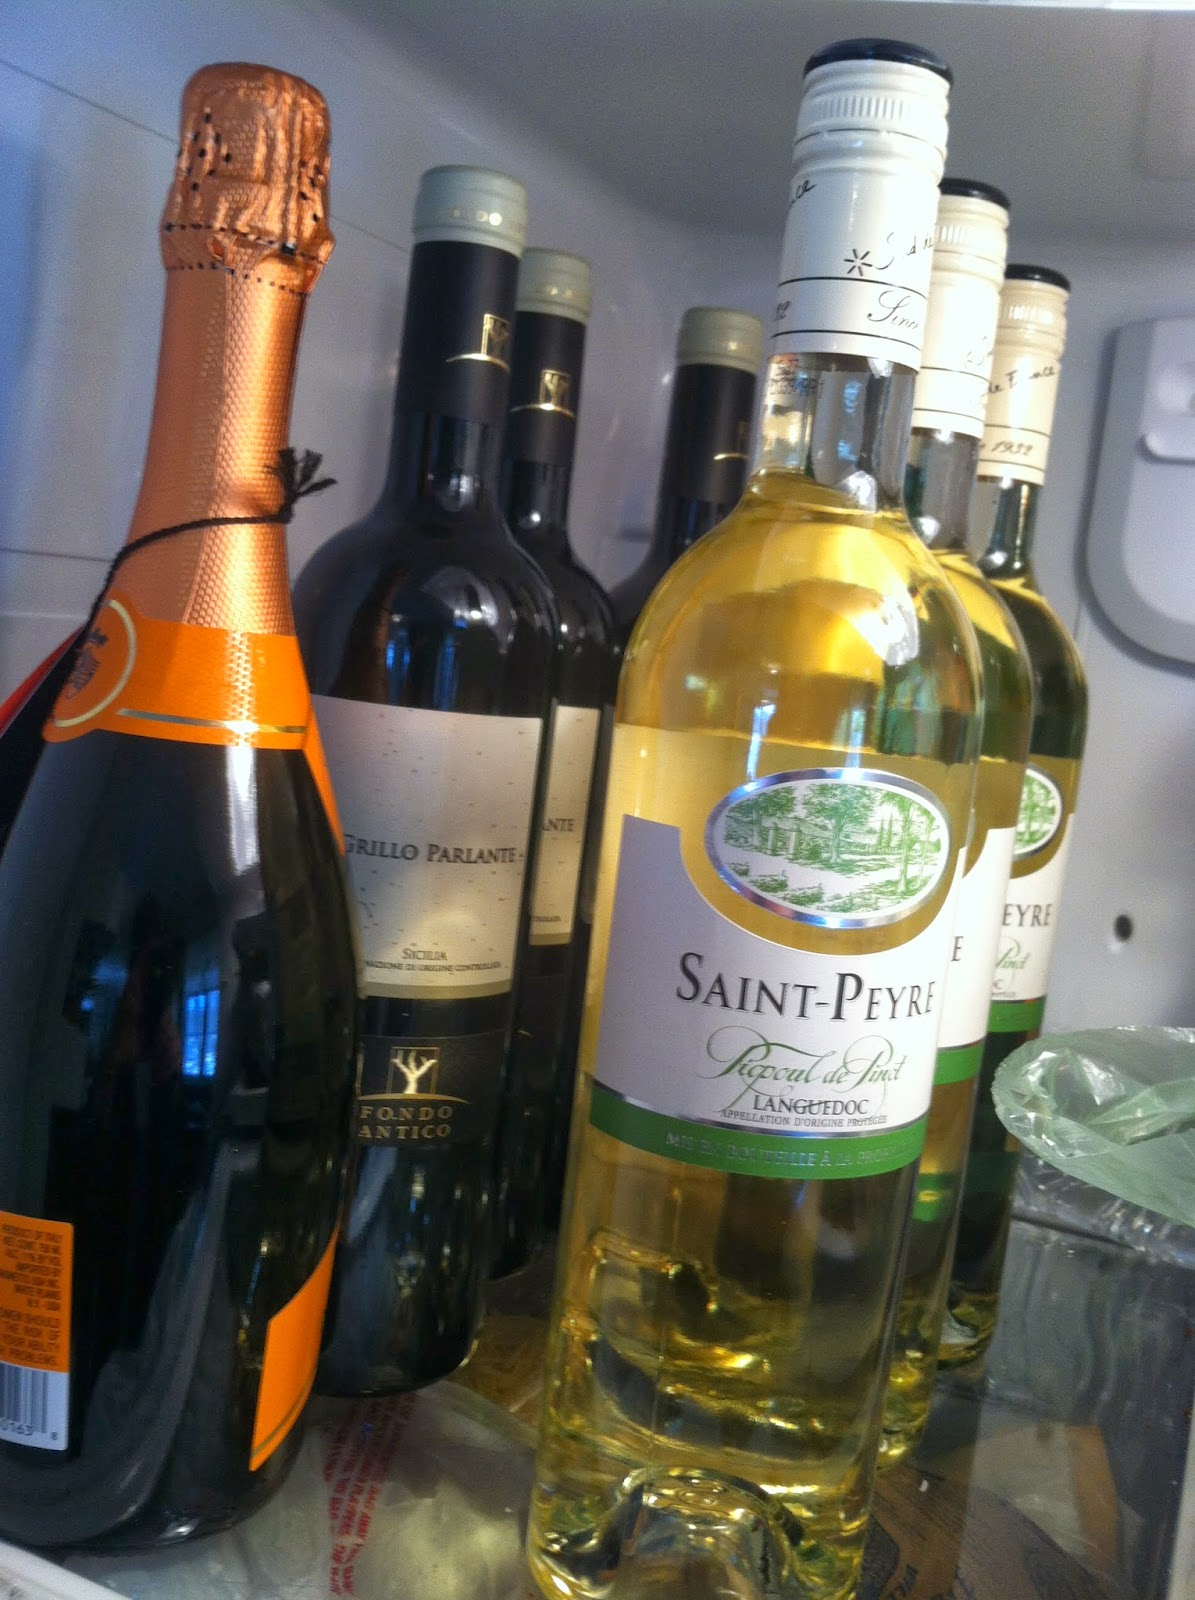 Interesting white wines: Picpoul-de-Pinet and Grillo, chilling for a party. #wine